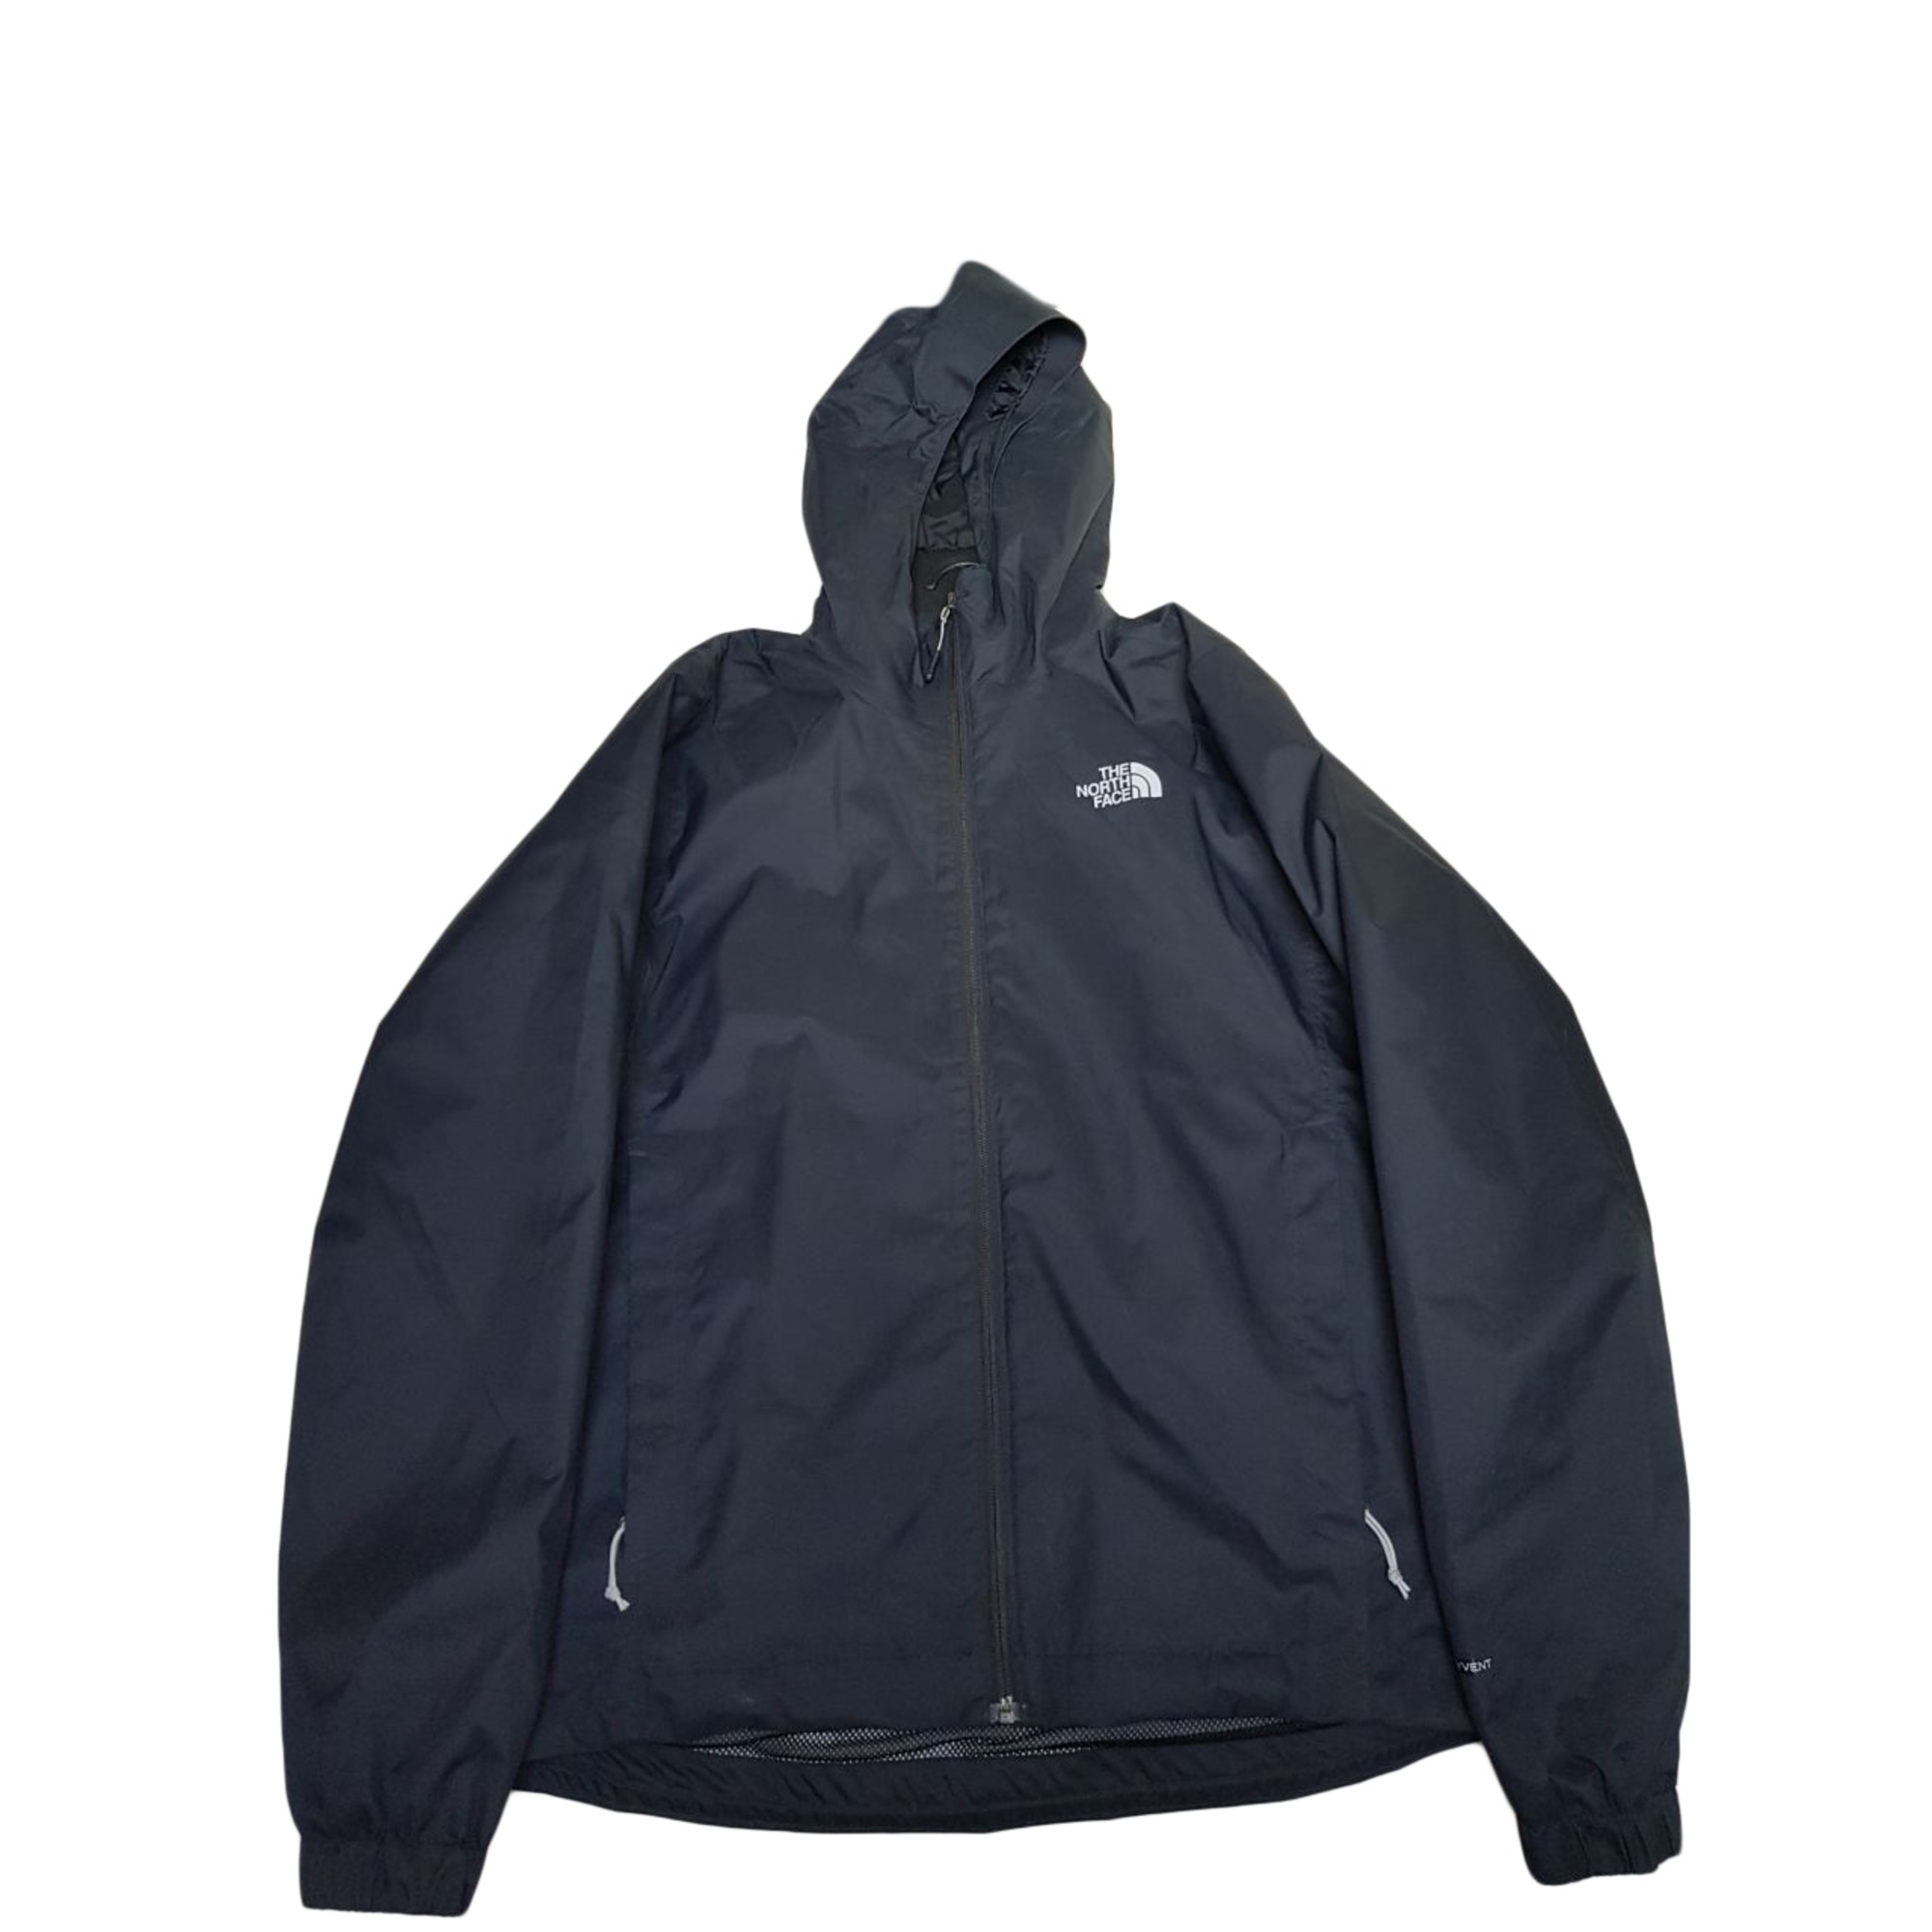 Waterproof, Trench THE NORTH FACE Black